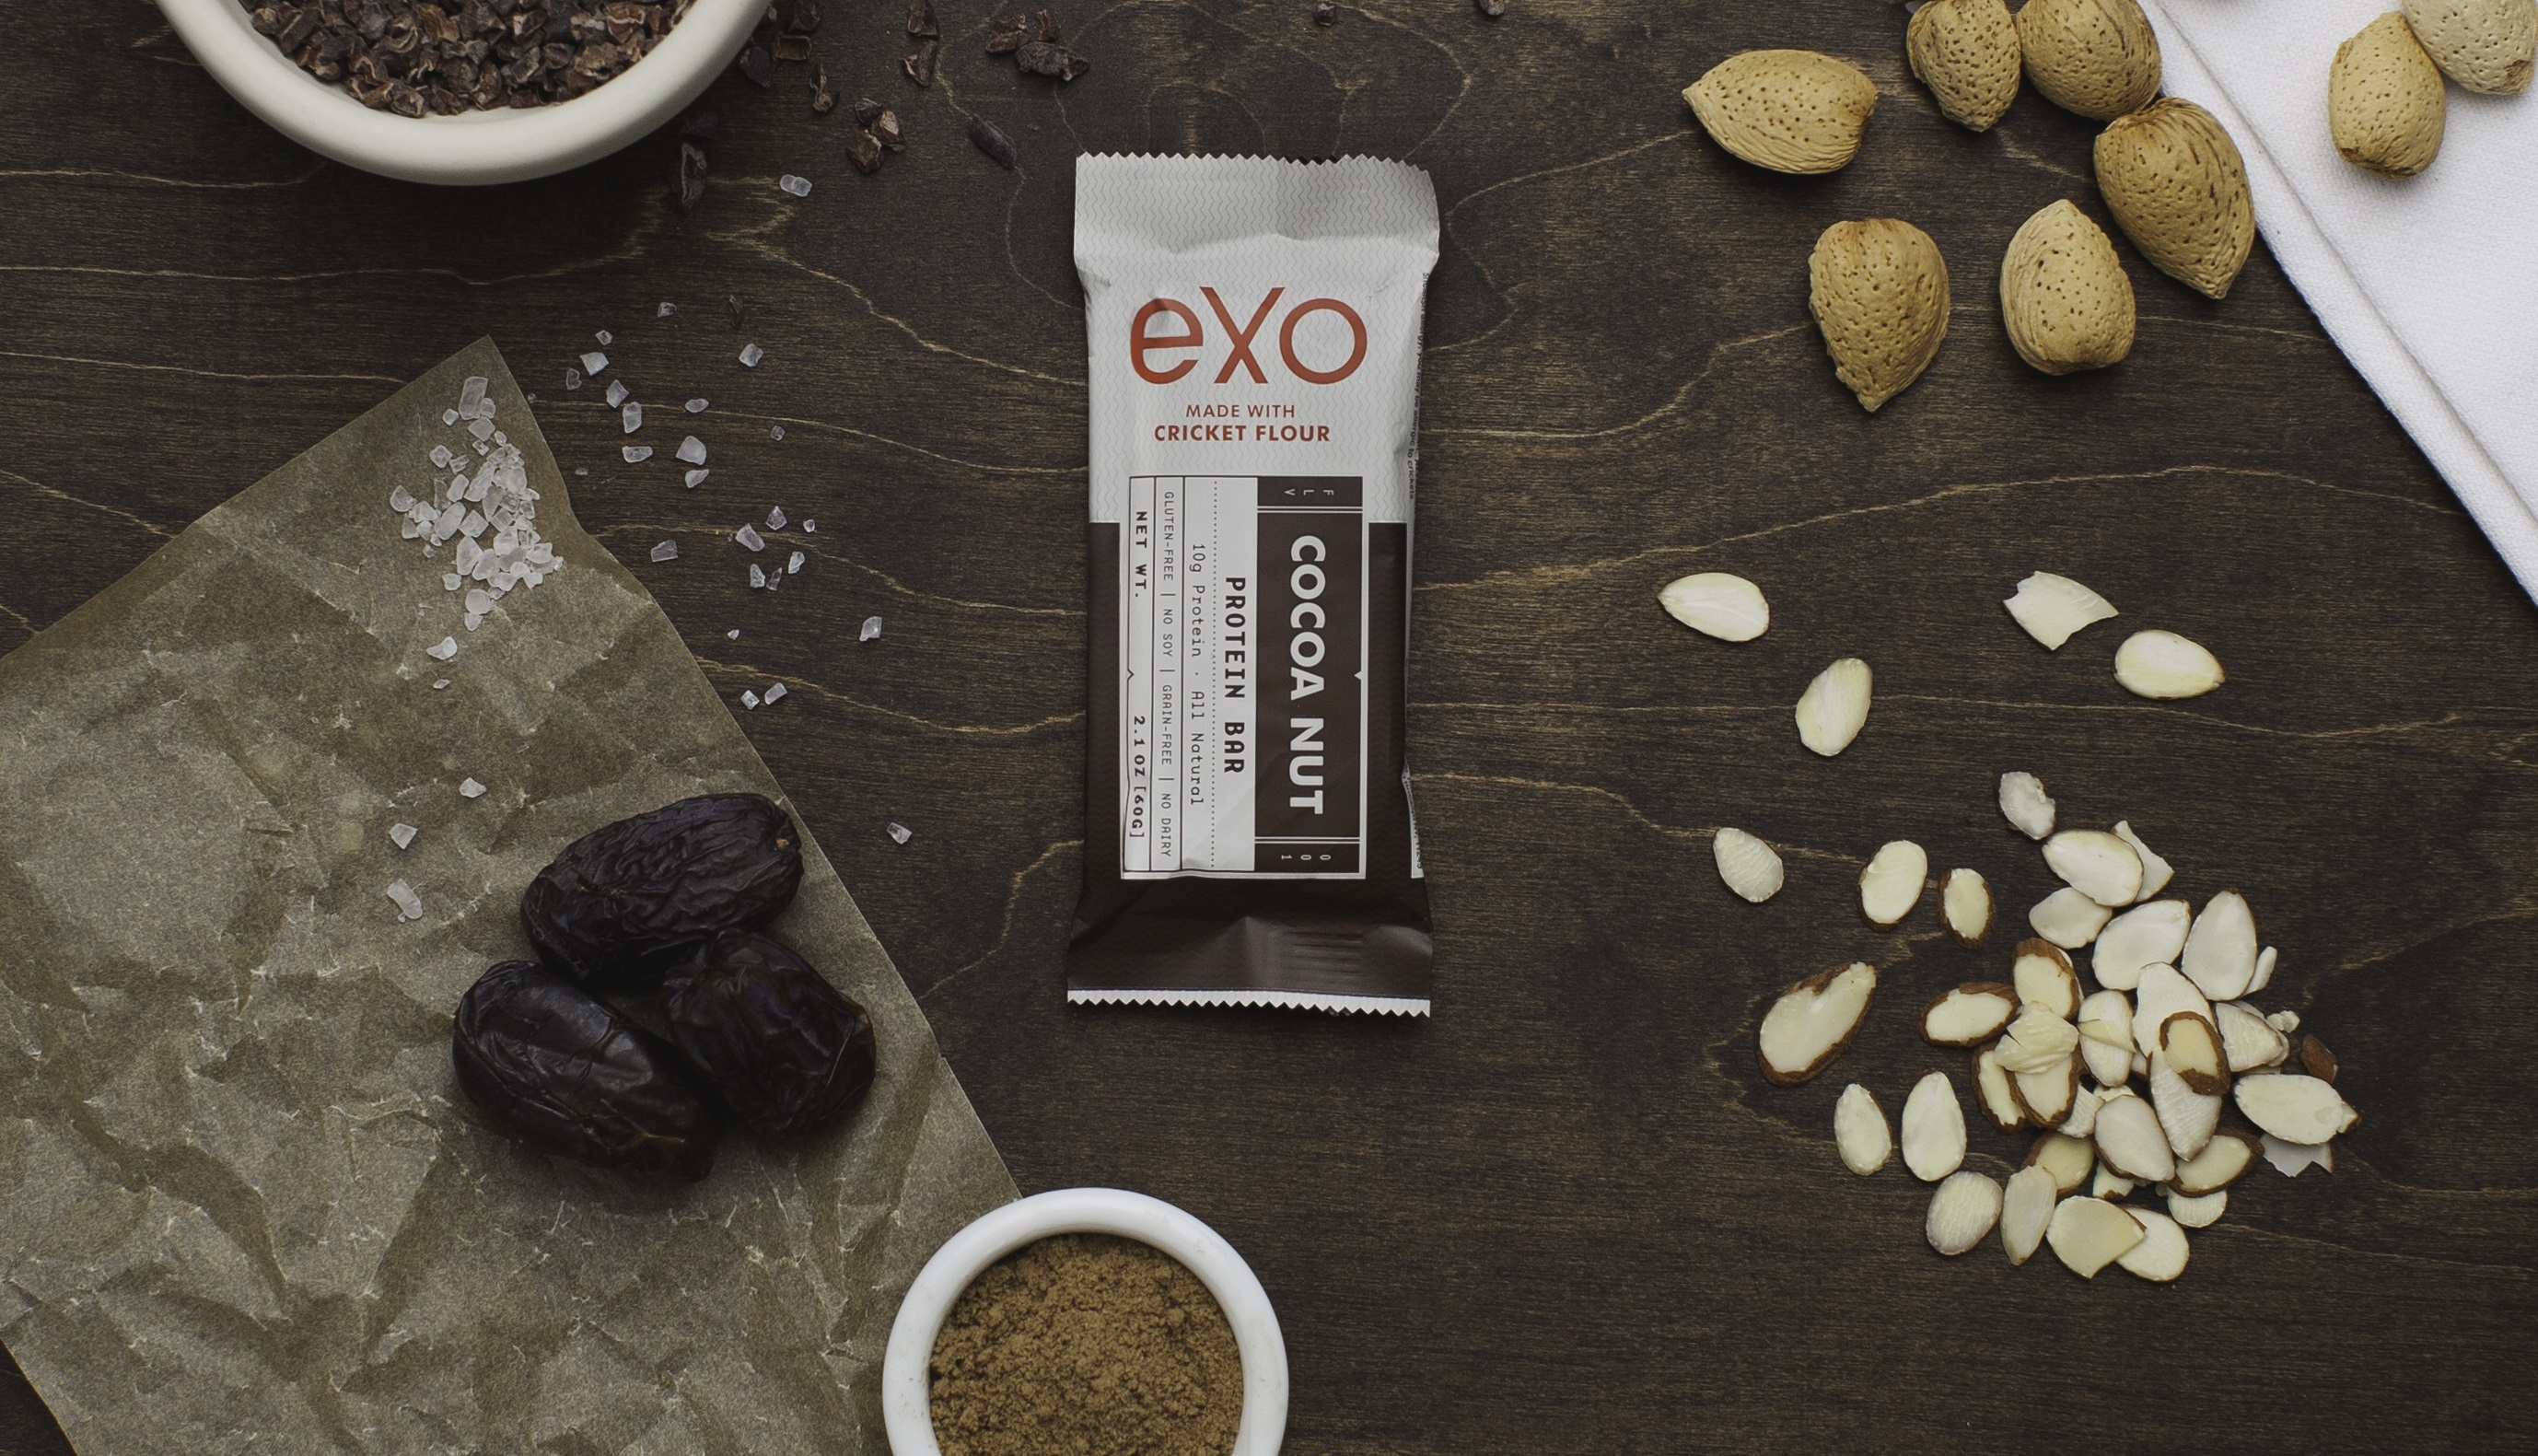 Exo cricket flour protein bar